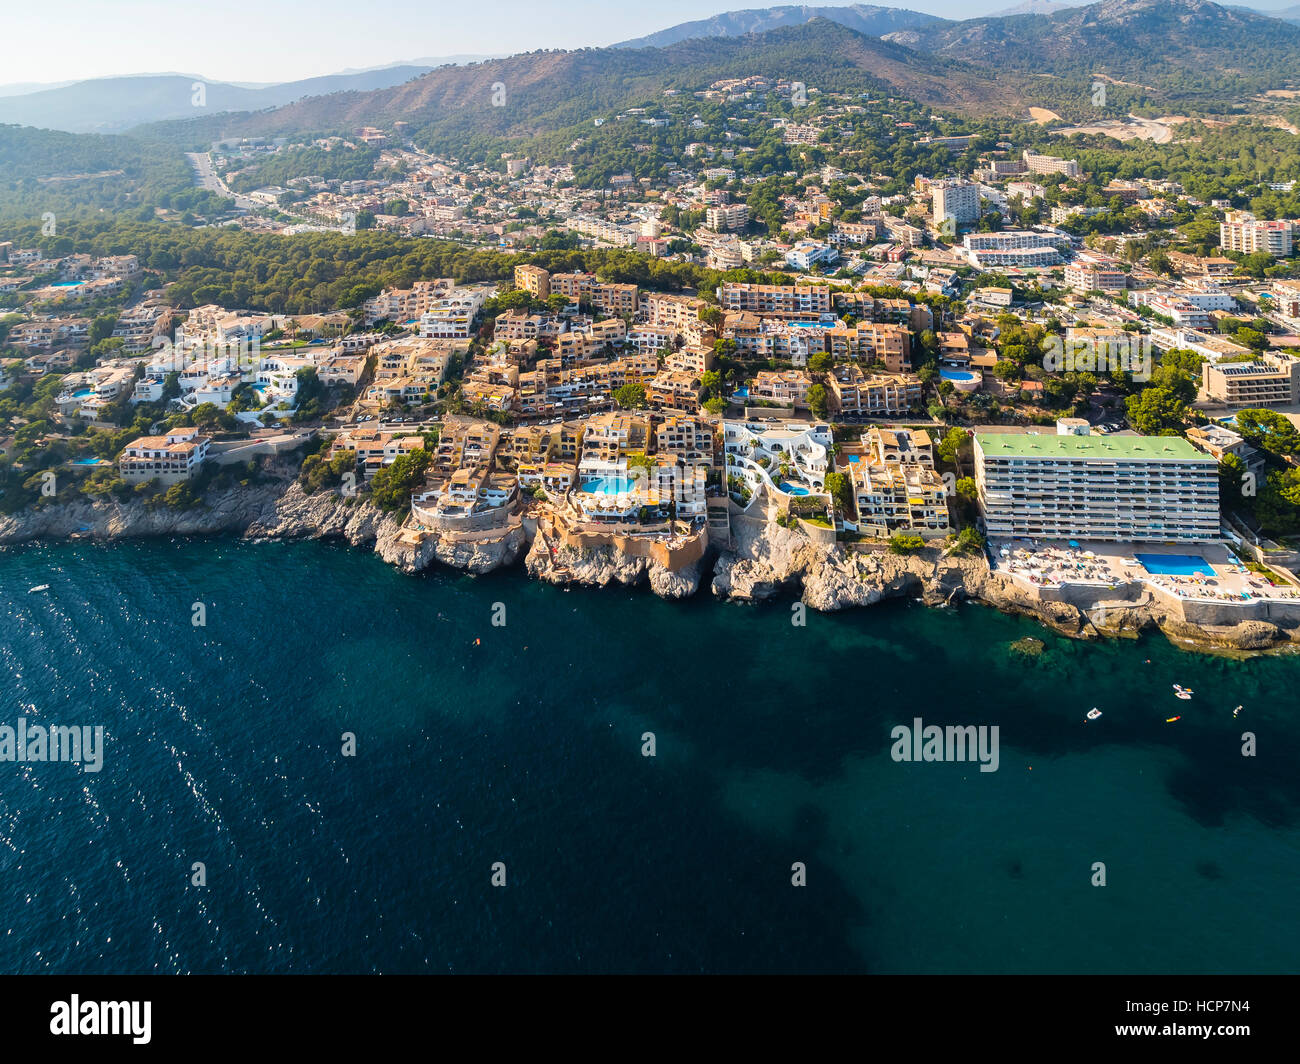 Aerial view, Costa de la Calma, Cala Fornells, Mallorca, Balearic Islands, Spain - Stock Image